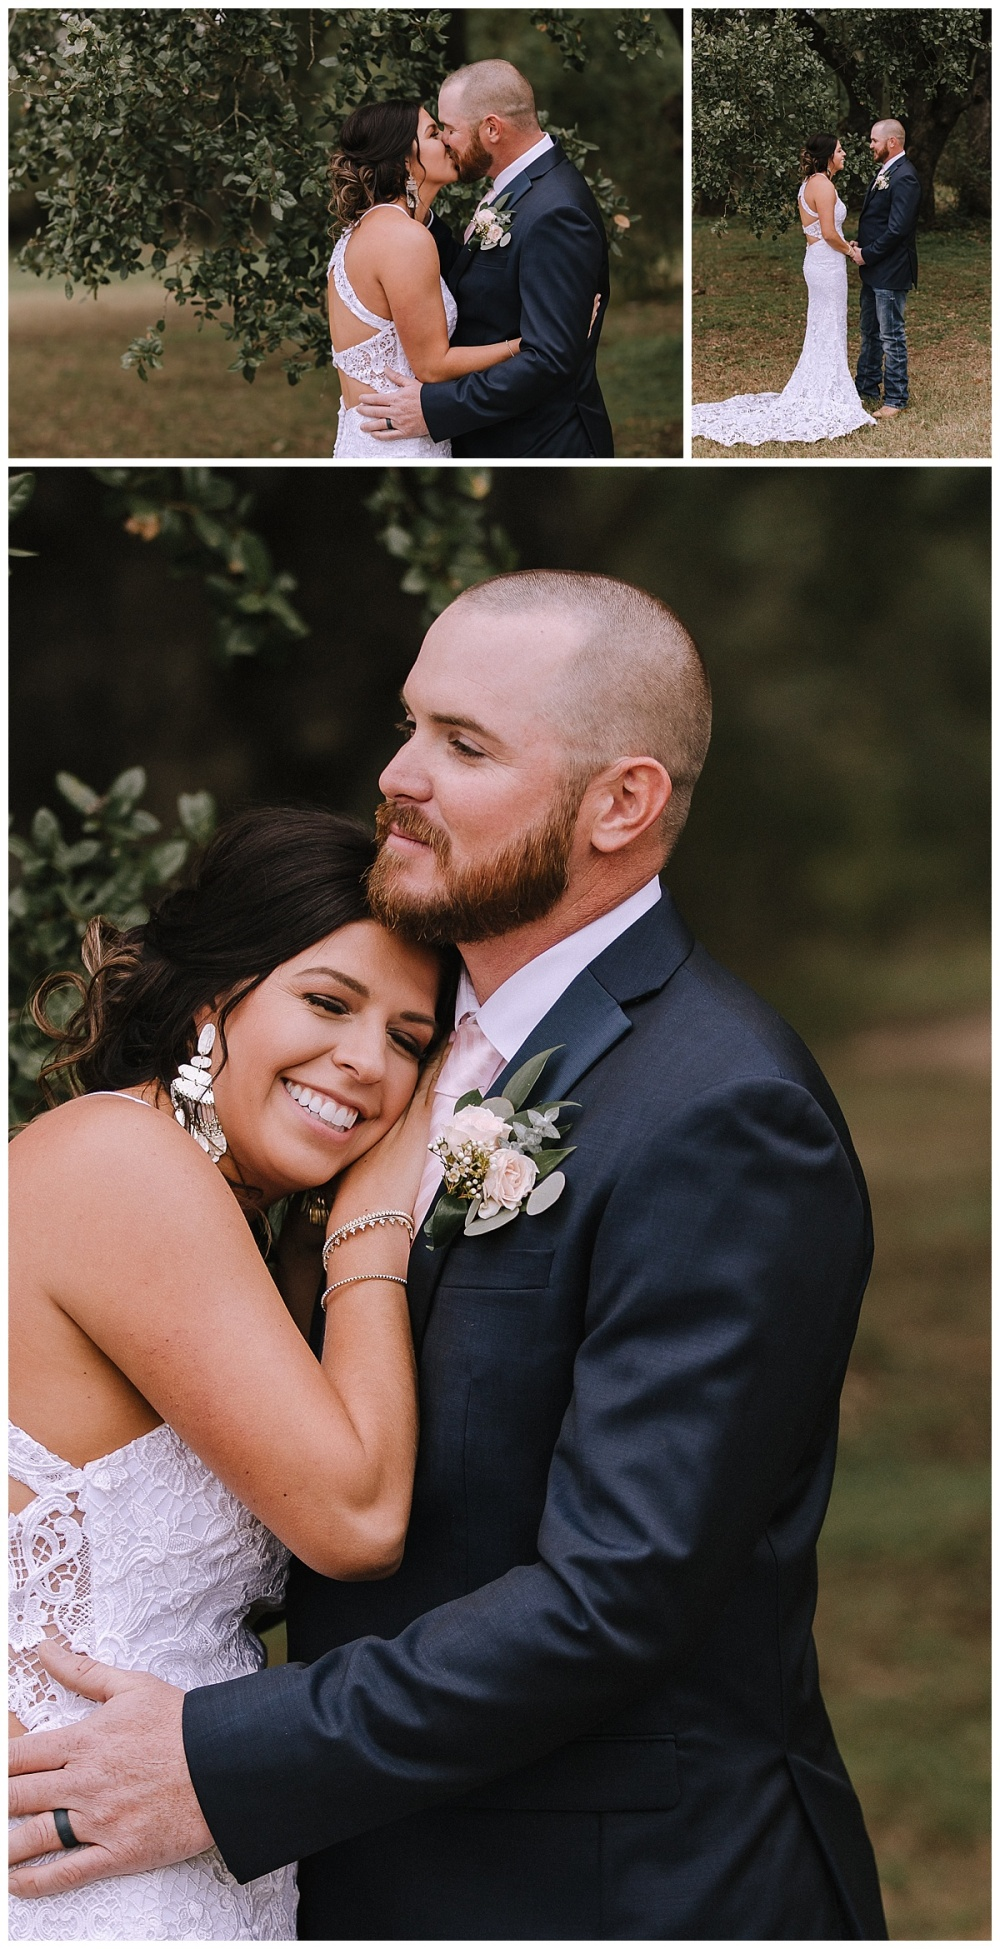 South-Texas-Wedding-Photographer-Rose-Gold-and-Navy-Theme-LaVernia-Bride-Groom-Carly-Barton-Photography_0077